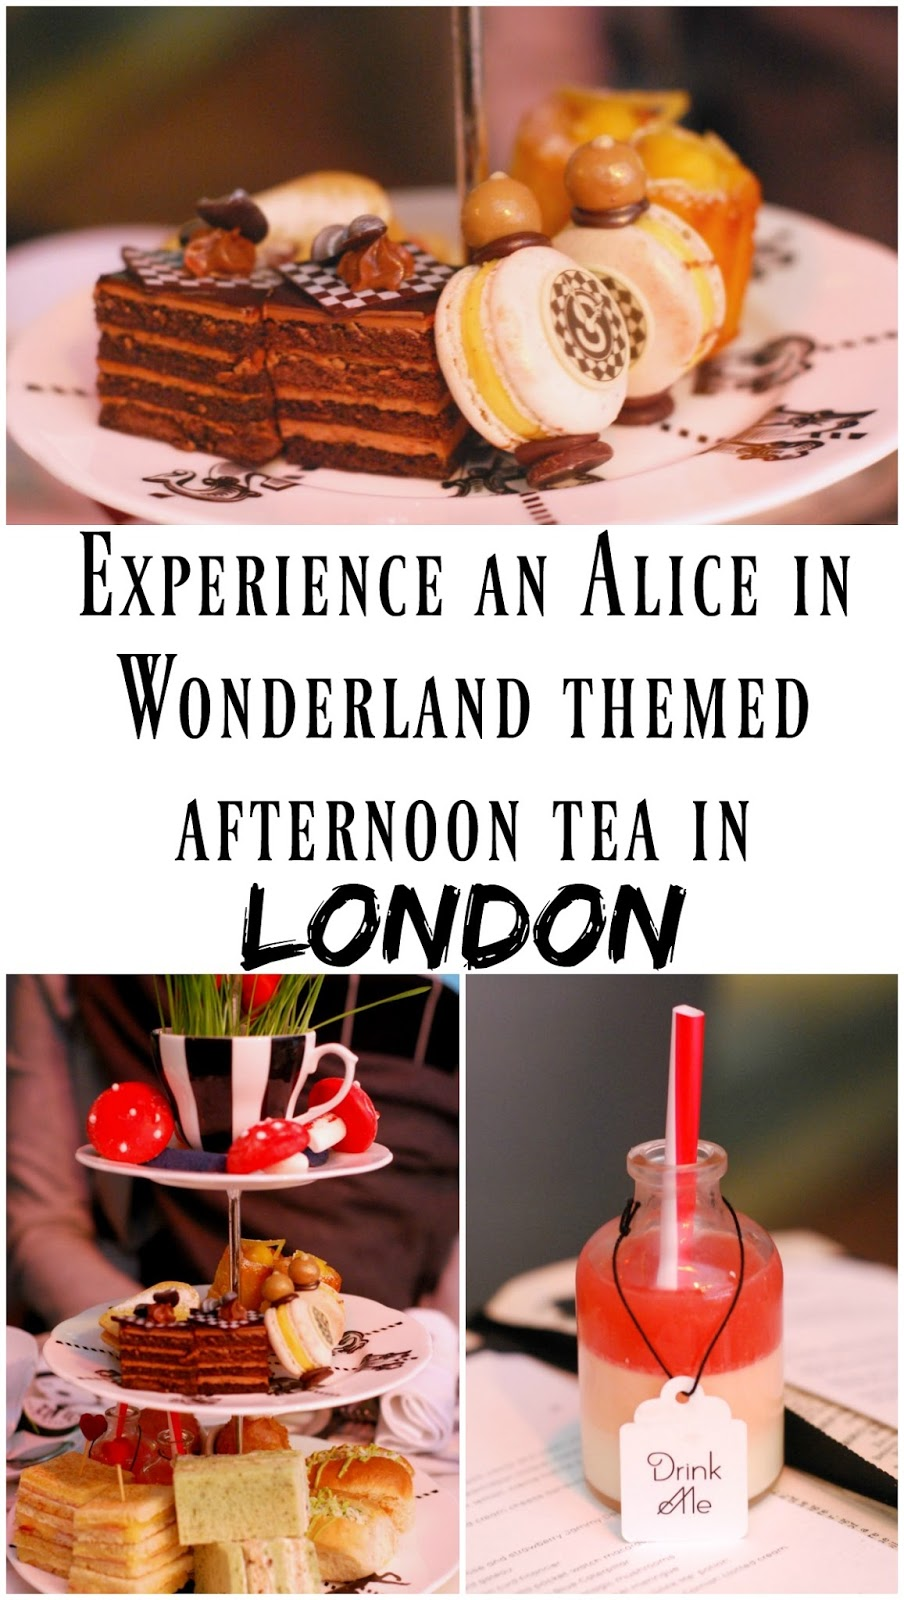 PIN FOR LATER: Experience an Alice in Wonderland themed afternoon tea at the Sanderson Hotel in London, England! This ADORABLE afternoon tea is called the 'Mad Hatters Tea' and features whimsical food and cute crockery. One of the best afternoon teas in London!